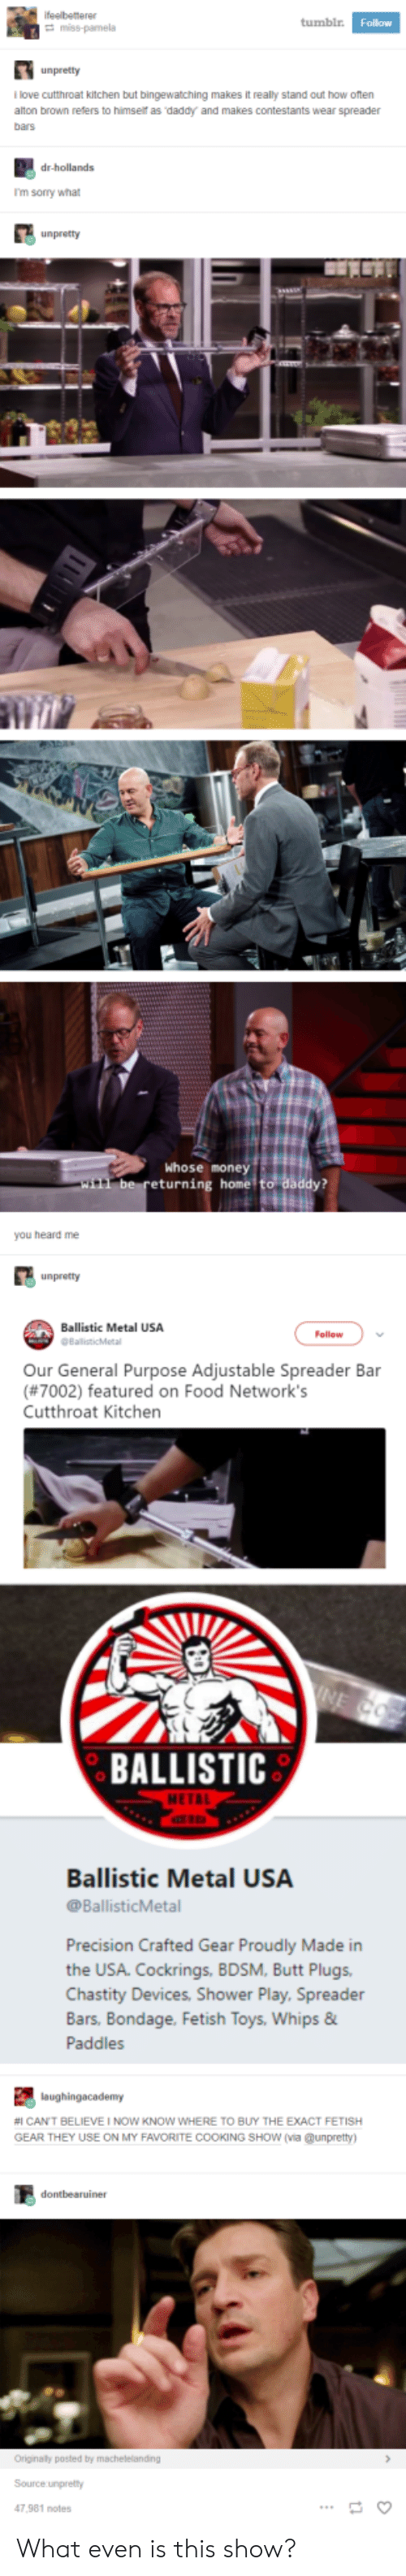 Butt, Food, and Money: tumblr  Follow  unpretty  llove cutthroat kitchen but bingewatching makes it really stand out how oten  alton brown refers to himser as daddy and makes contestants wear spreader  bars  dr-hollands  I'm sorry what  Whose money  eturning home  you heard me  unpretty  Ballistic Metal USA  Follow  Our General Purpose Adjustable Spreader Bar  (#7002) featured on Food Network's  Cutthroat Kitchen  BALLISTIC  Ballistic Metal USA  @BallisticMetal  Precision Crafted Gear Proudly Made in  the USA. Cockrings, BDSM, Butt Plugs  Chastity Devices, Shower Play, Spreader  Bars. Bondage. Fetish  Paddles  Toys, Whips &  #1 CANT BELIEVE I NOW KNOW WHERE TO BUY THE EXACT FETISH  GEAR THEY USE ON MY FAVORITE COOKING SHow (via @unpretty  Source unpretty  47,981 notes What even is this show?